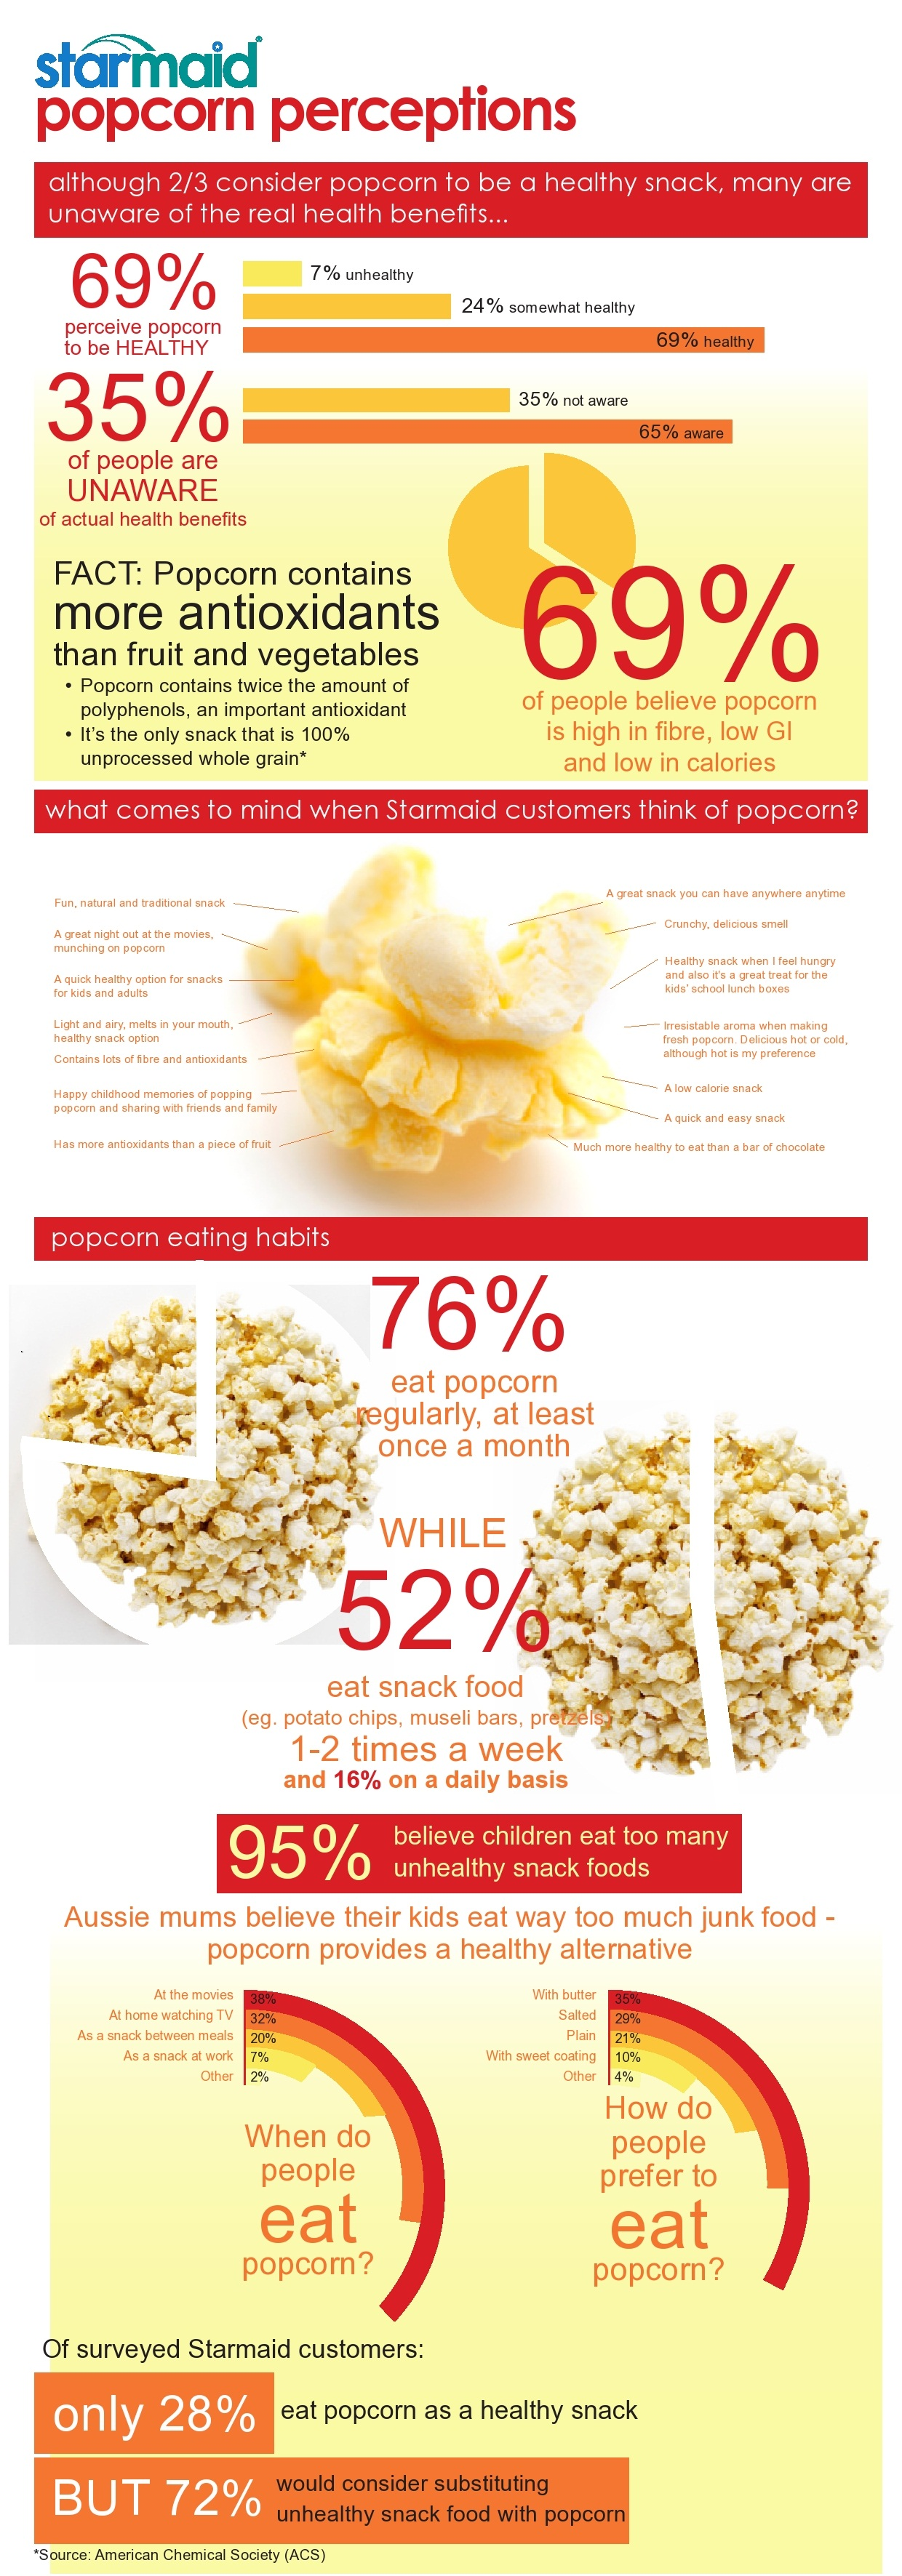 who invented microwave popcorn vision